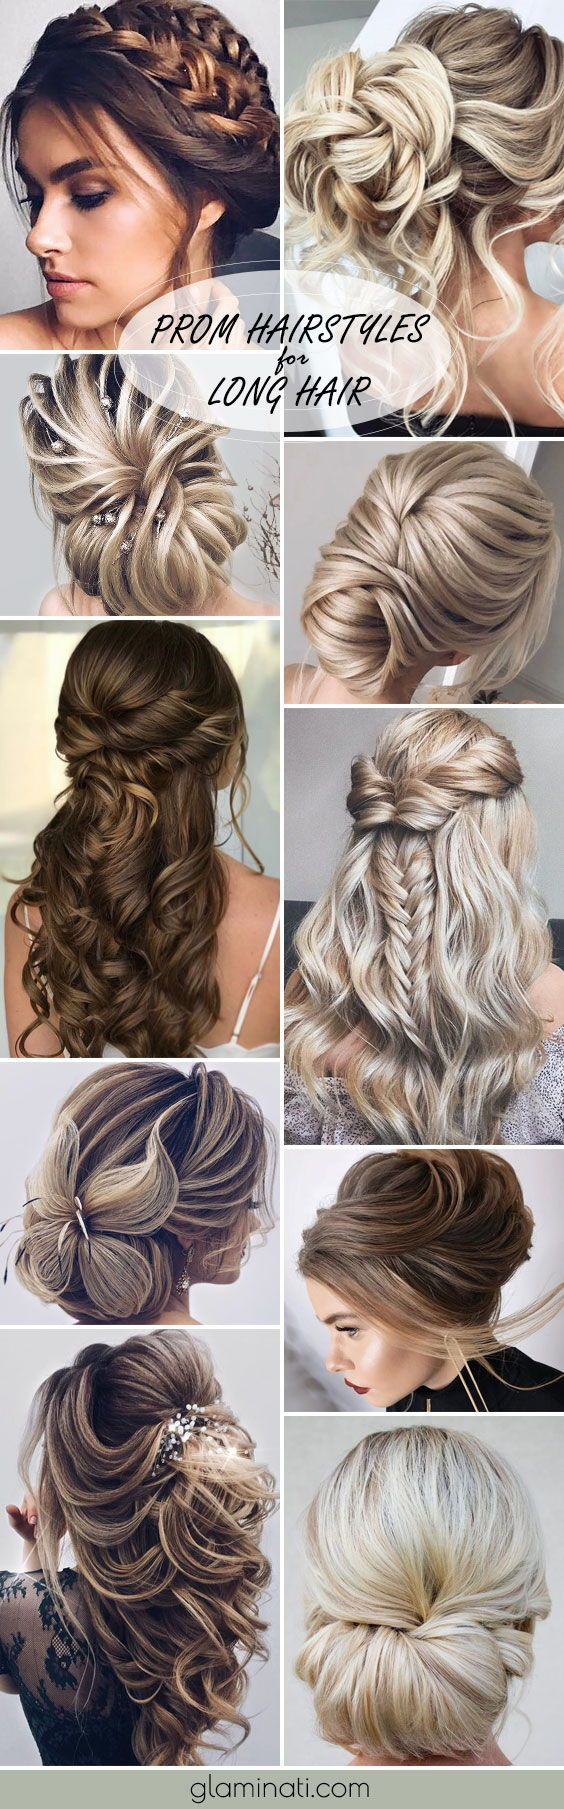 stunning prom hairstyles for long hair for prom hairstyles